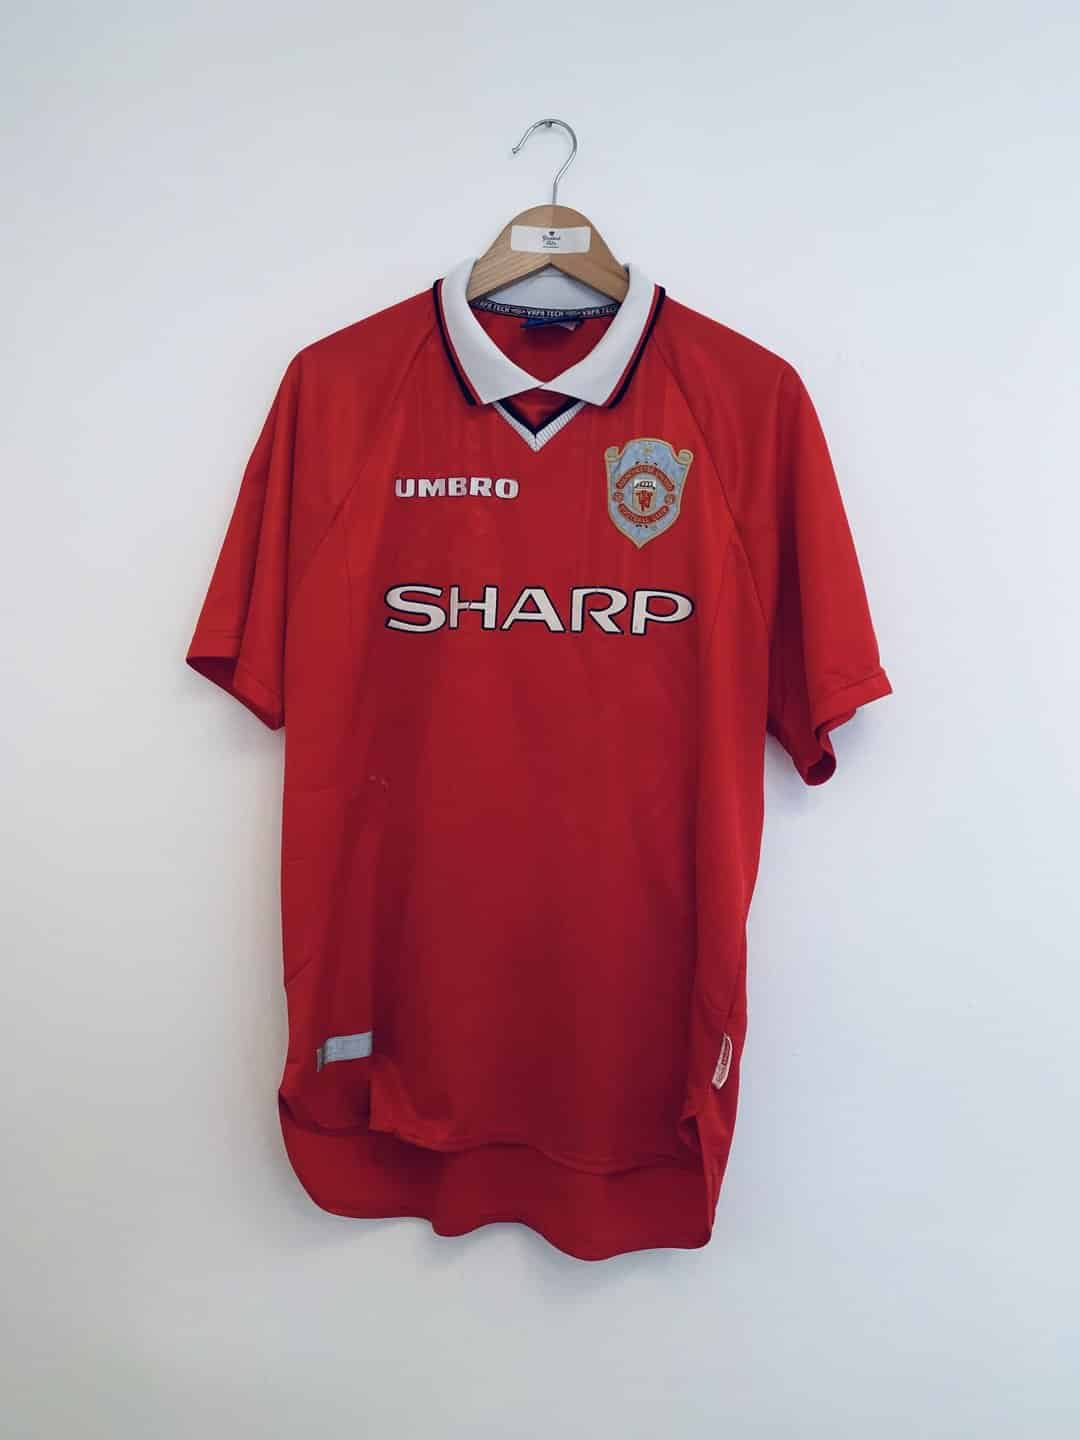 maillot-manchester-united--ligue-des-champions-1999-2000-umbro